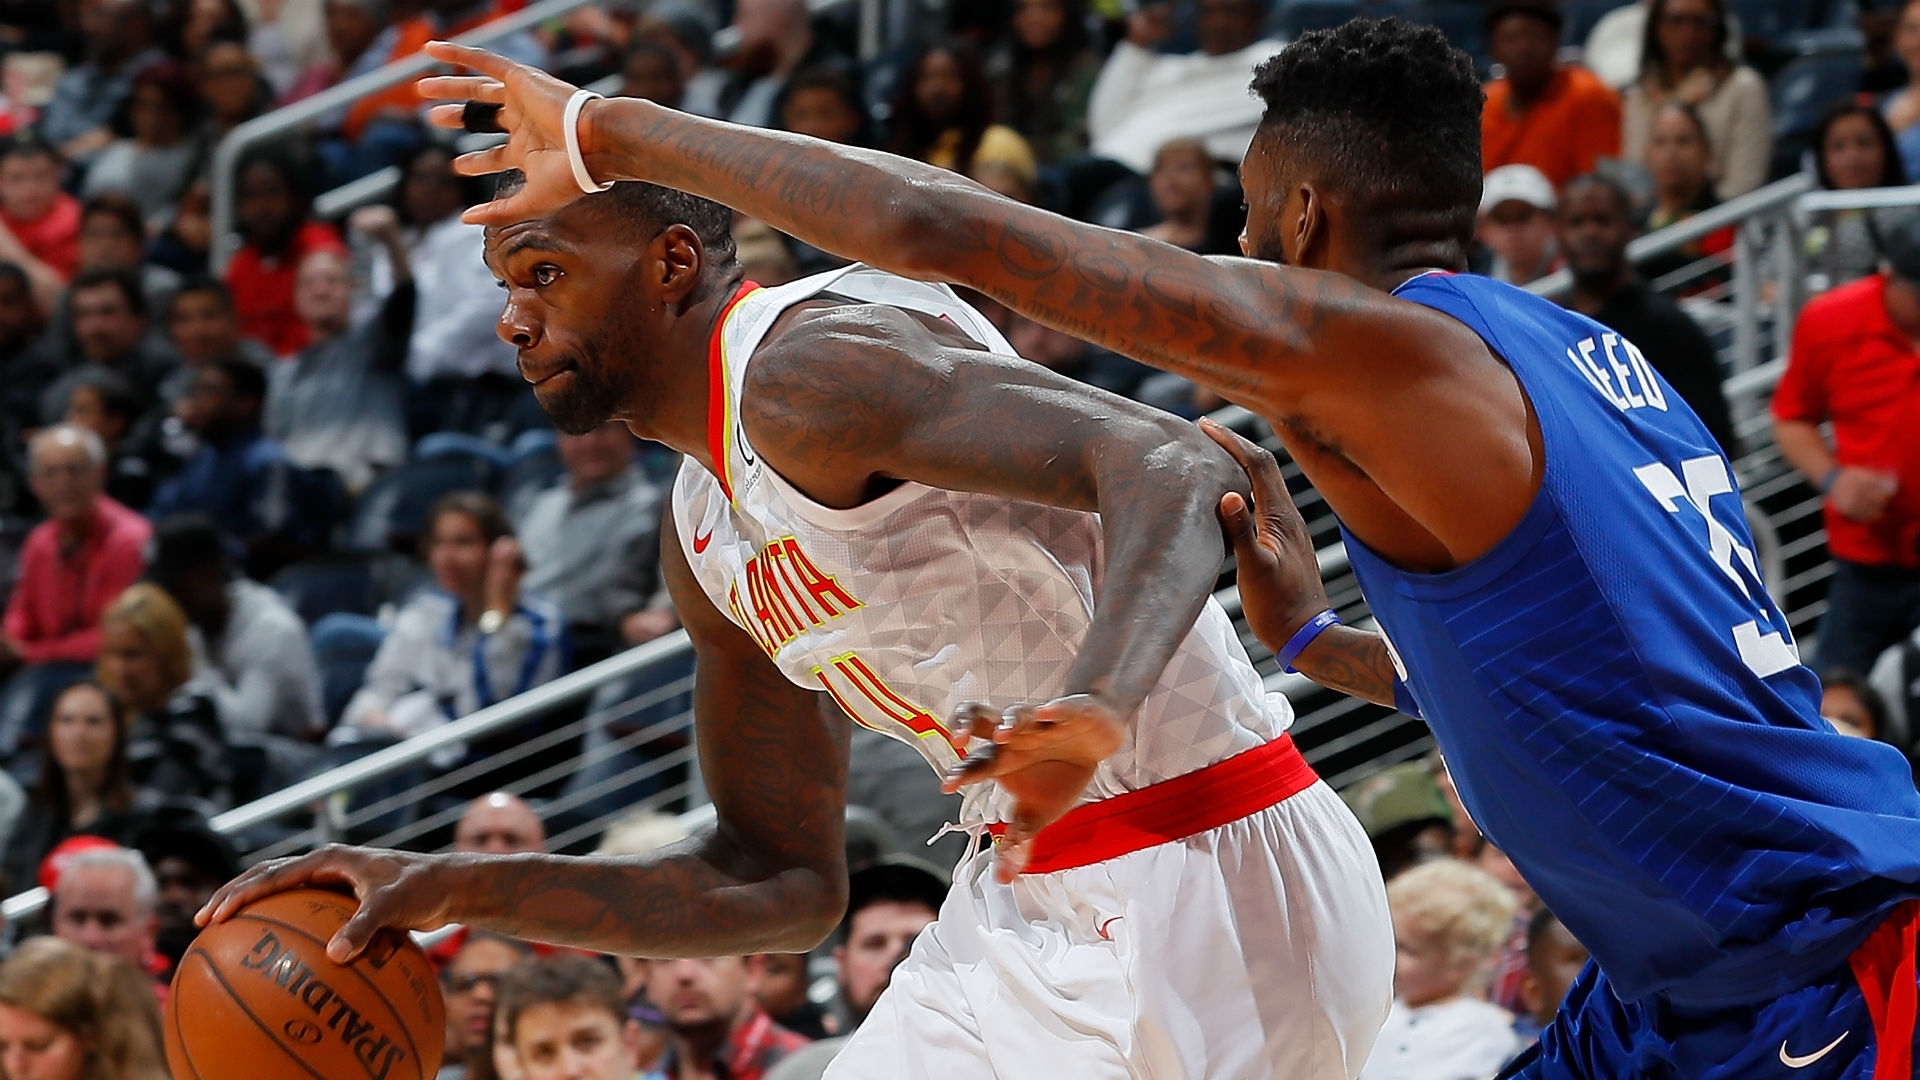 Dewayne Dedmon makes big strides (and maybe big money) by changing game within Hawks' system